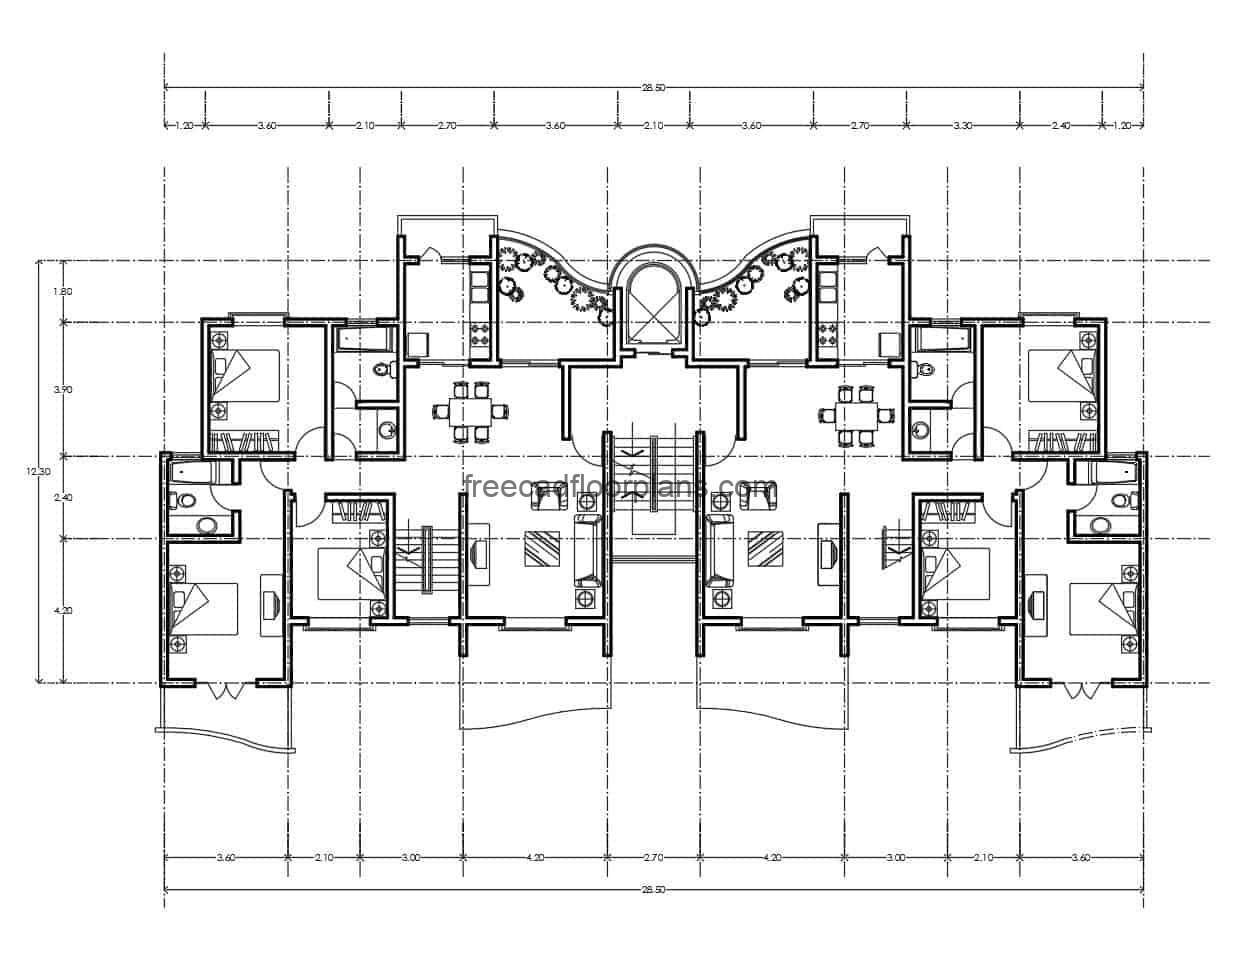 Architectural project and dimensioned plant of residential apartment of volumetria combined with balconies in curves and rectangular, apartment with three bedrooms, two bathrooms, living room, kitchen and dining room, with two balconies. file in format of autocad DWG